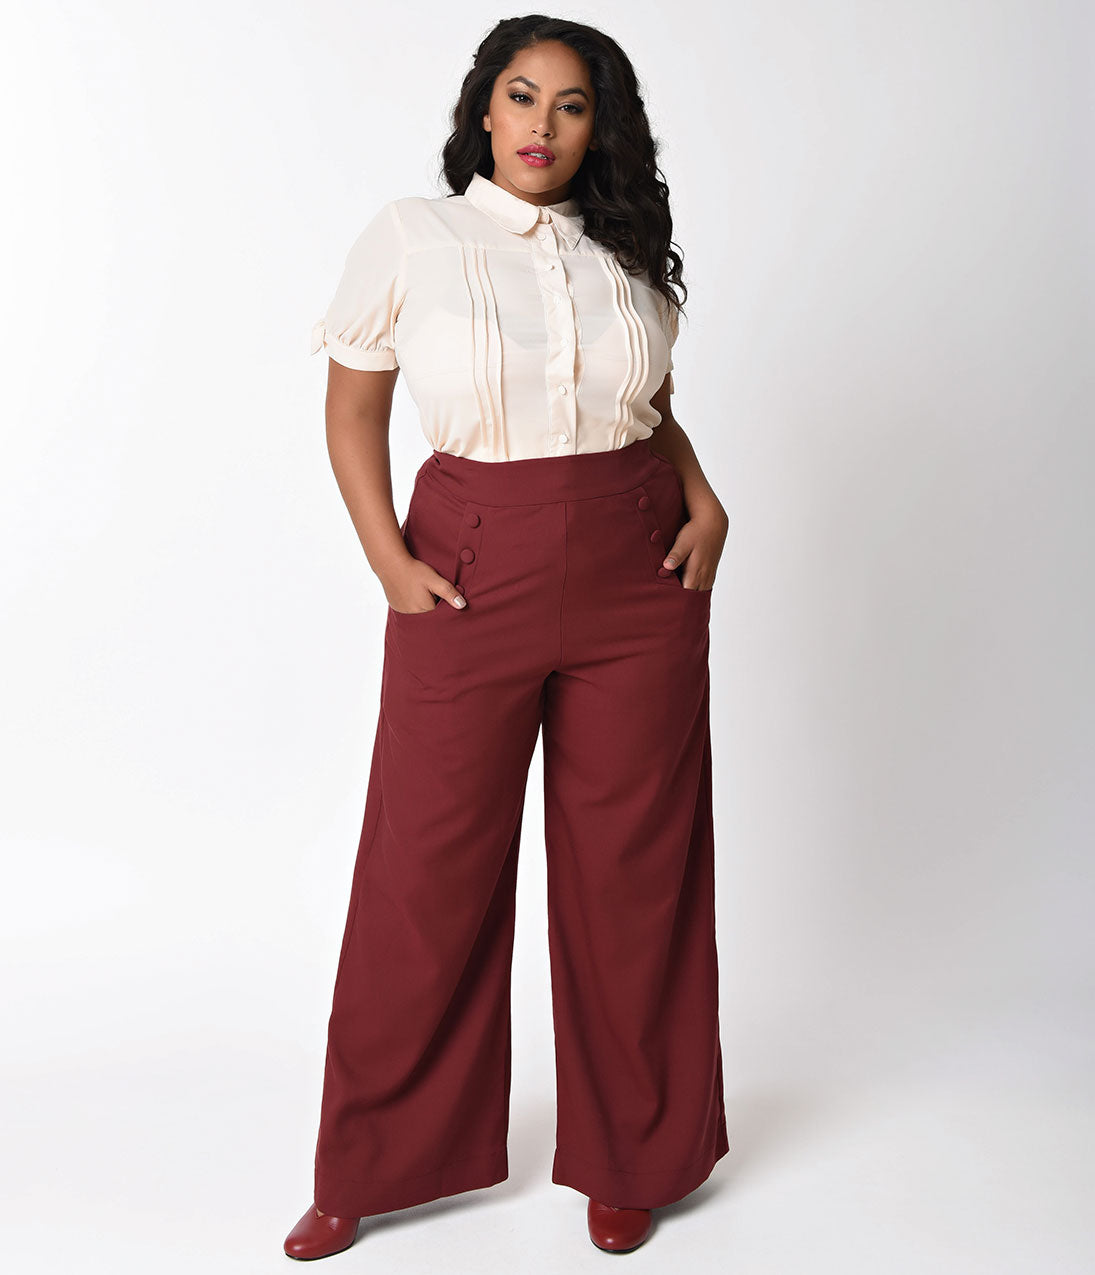 1950s Pants & Jeans- High Waist, Wide Leg, Capri, Pedal Pushers Unique Vintage Plus Size 1940s Burgundy Red High Waist Sailor Ginger Pants $62.00 AT vintagedancer.com